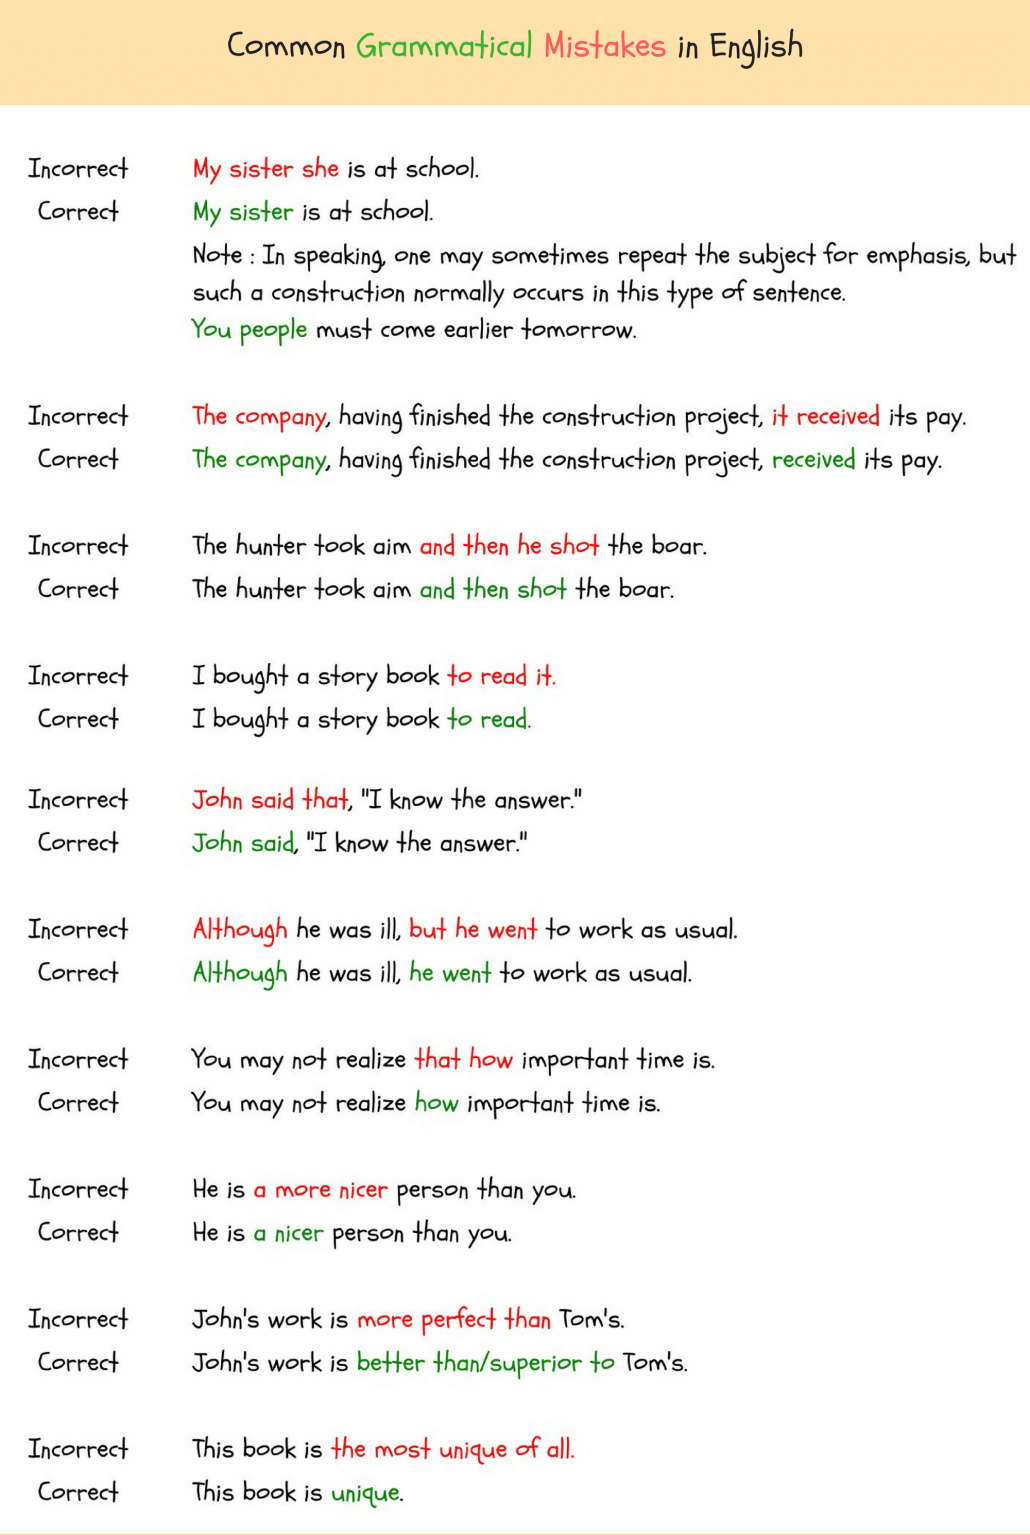 Grammatical Errors 150 Common Grammatical Errors In English Learn English English Vocabulary Words Common Grammar Mistakes [ 1535 x 1030 Pixel ]